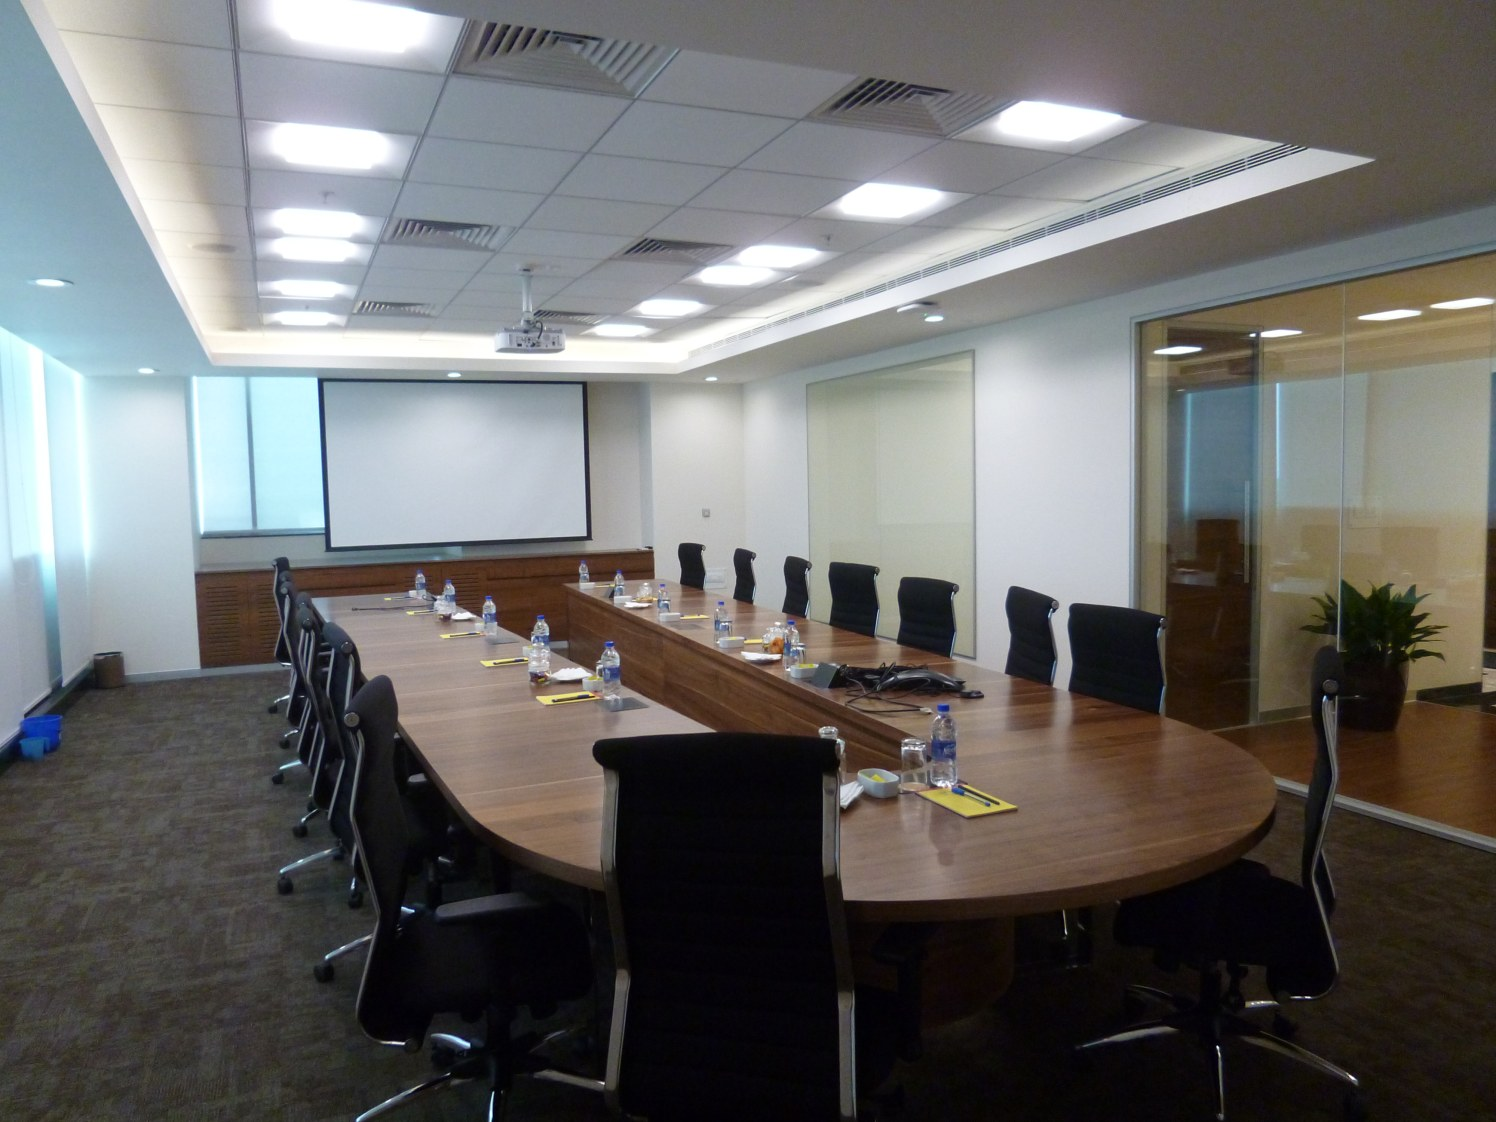 Classic conference room decor by Naveen Manne | Interior Design Photos & Ideas